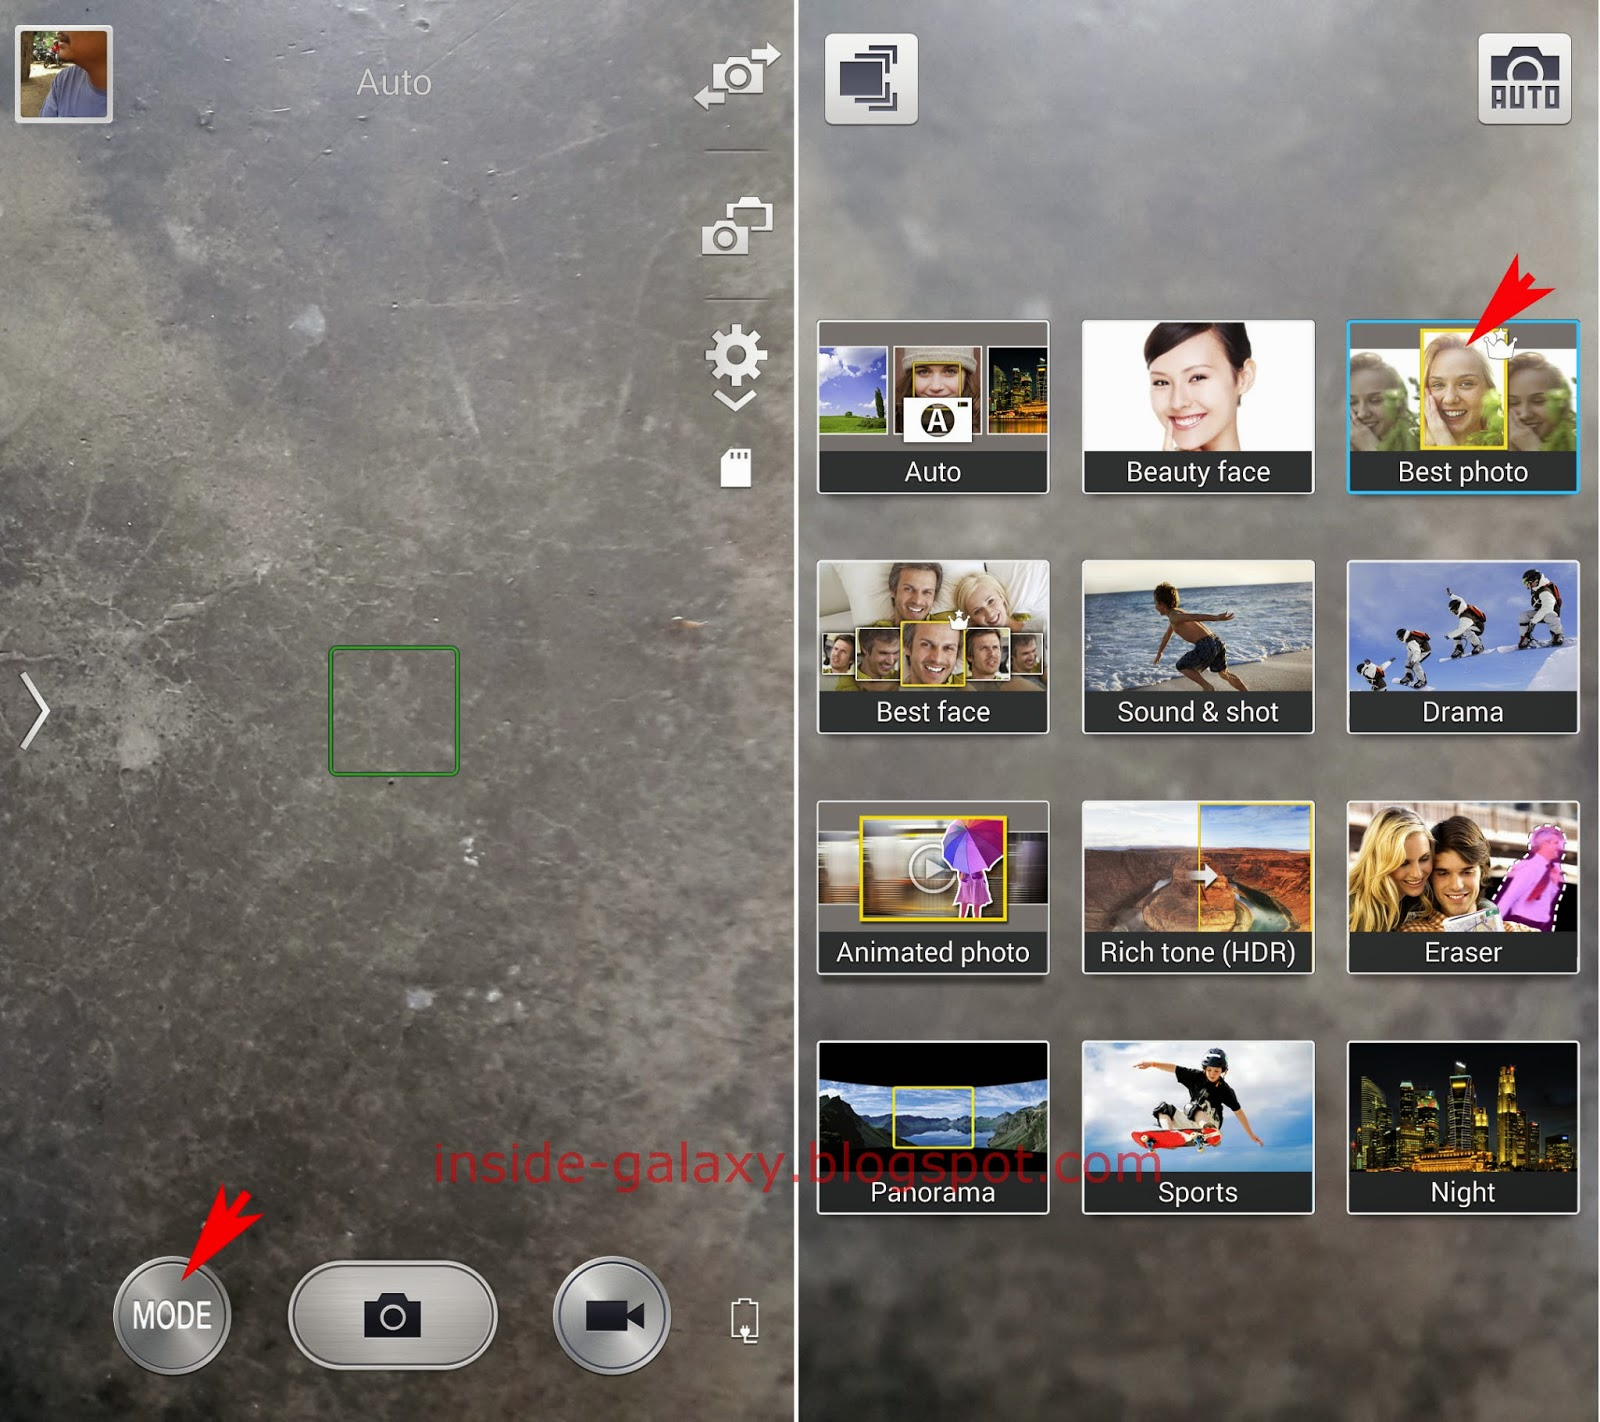 Samsung Galaxy S4: How To Enable And Use Best Photo Mode